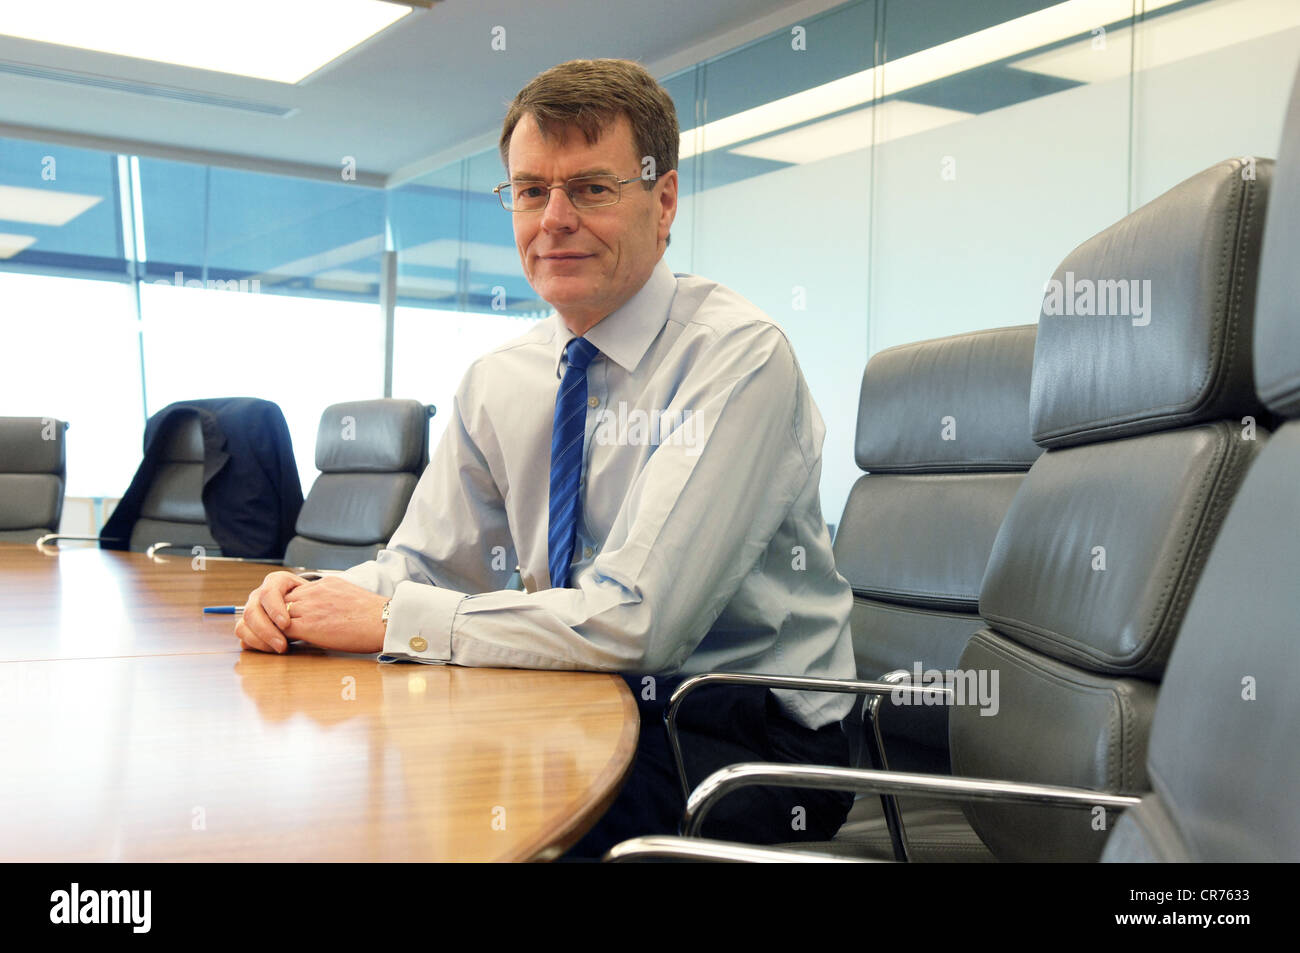 Picture shows British Airprts Authority CEO Colin Matthews sitting at desk - Stock Image